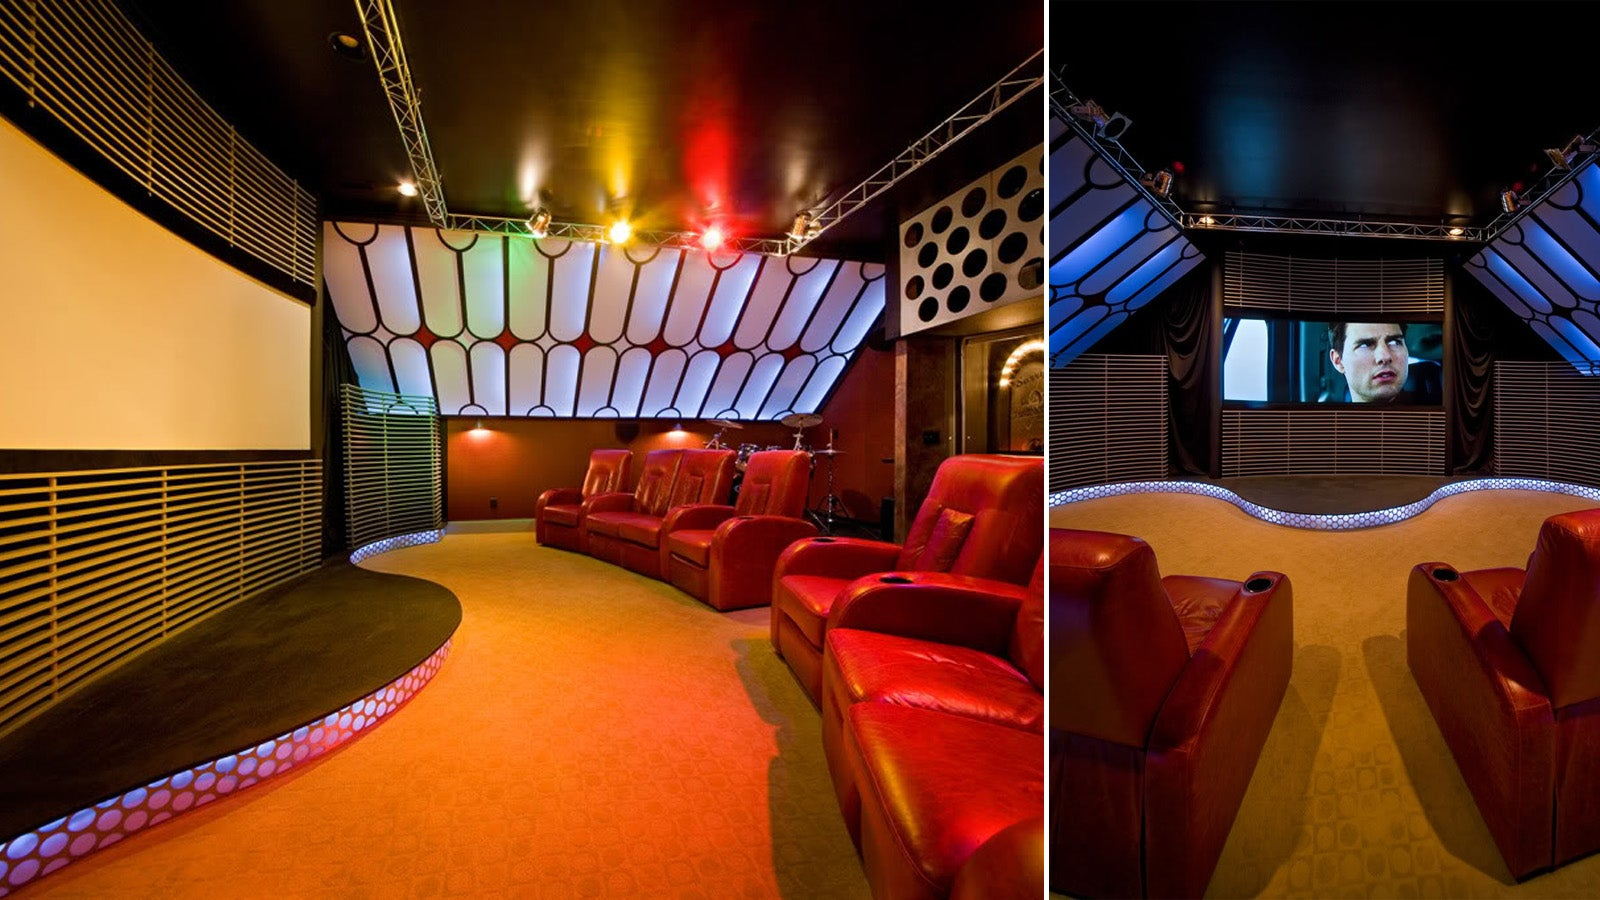 & 16 Obscenely Over the Top Home Theaters